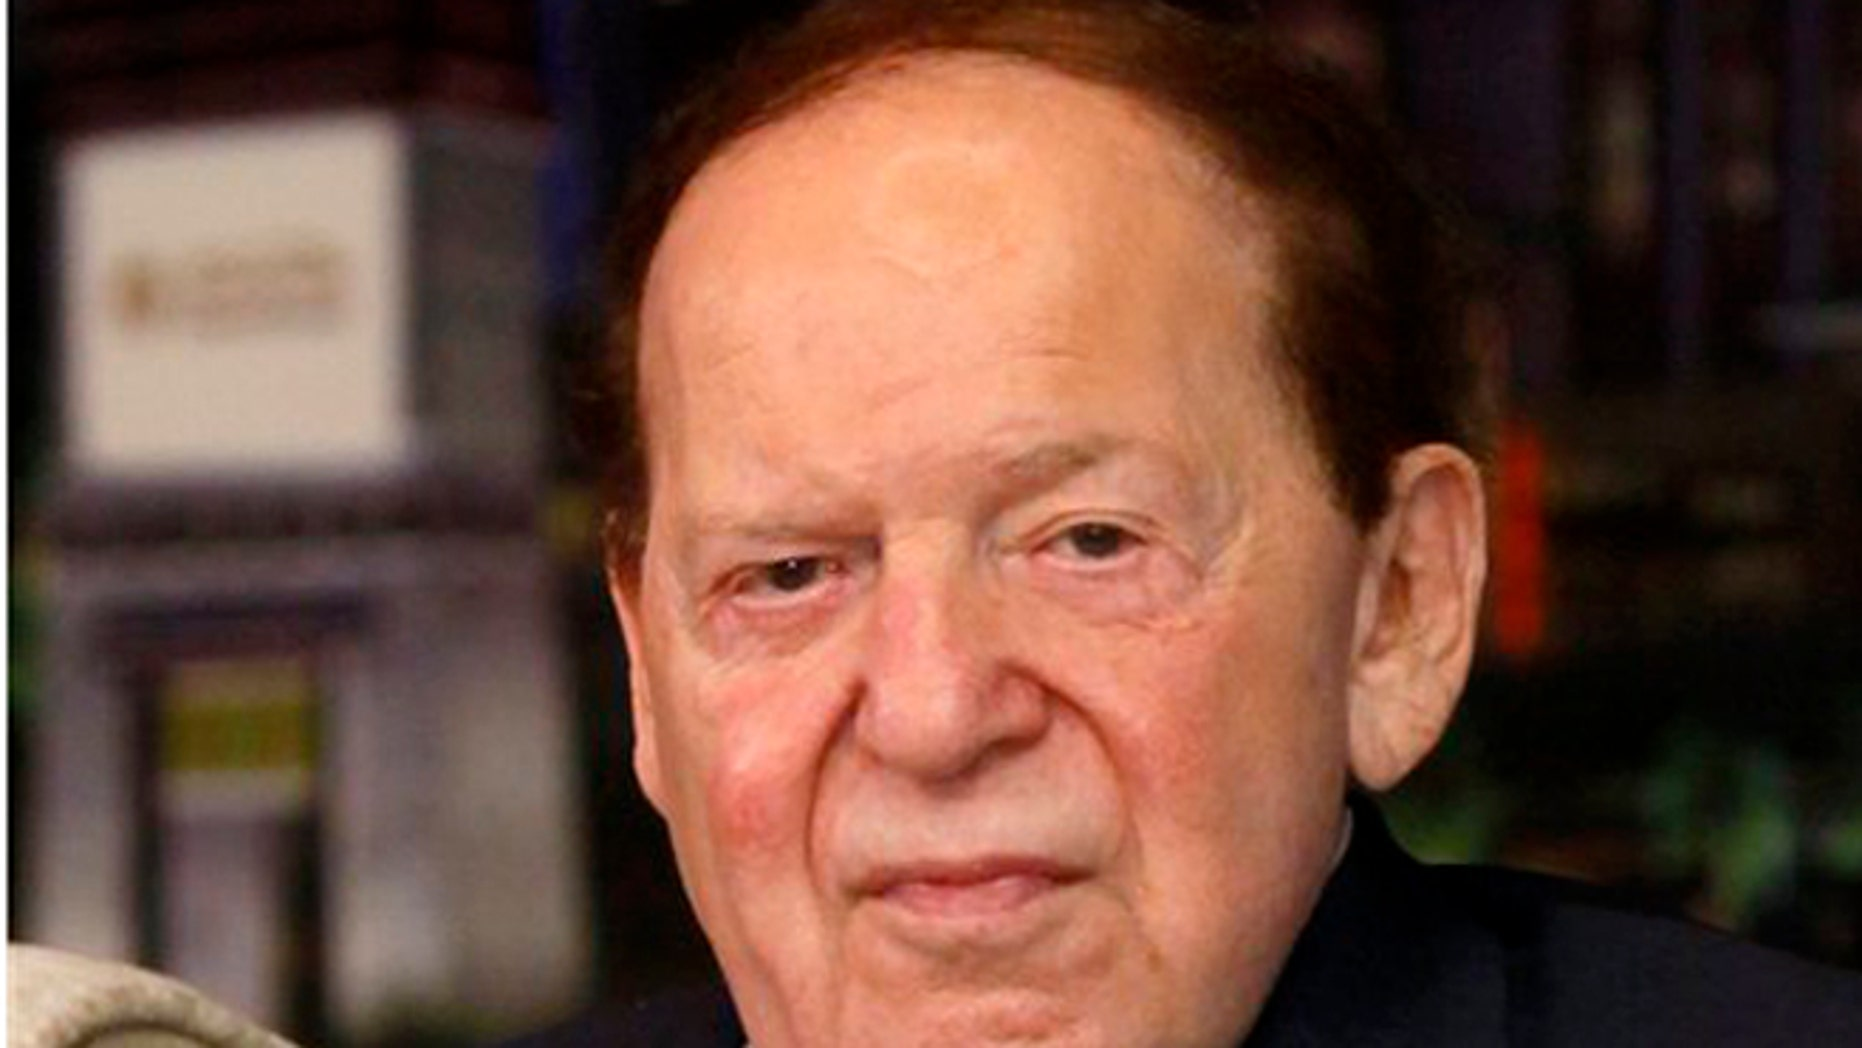 FILE: April 12, 2012: Sheldon Adelson, Las Vegas Sands CEO and financial backer for GOP candidates.